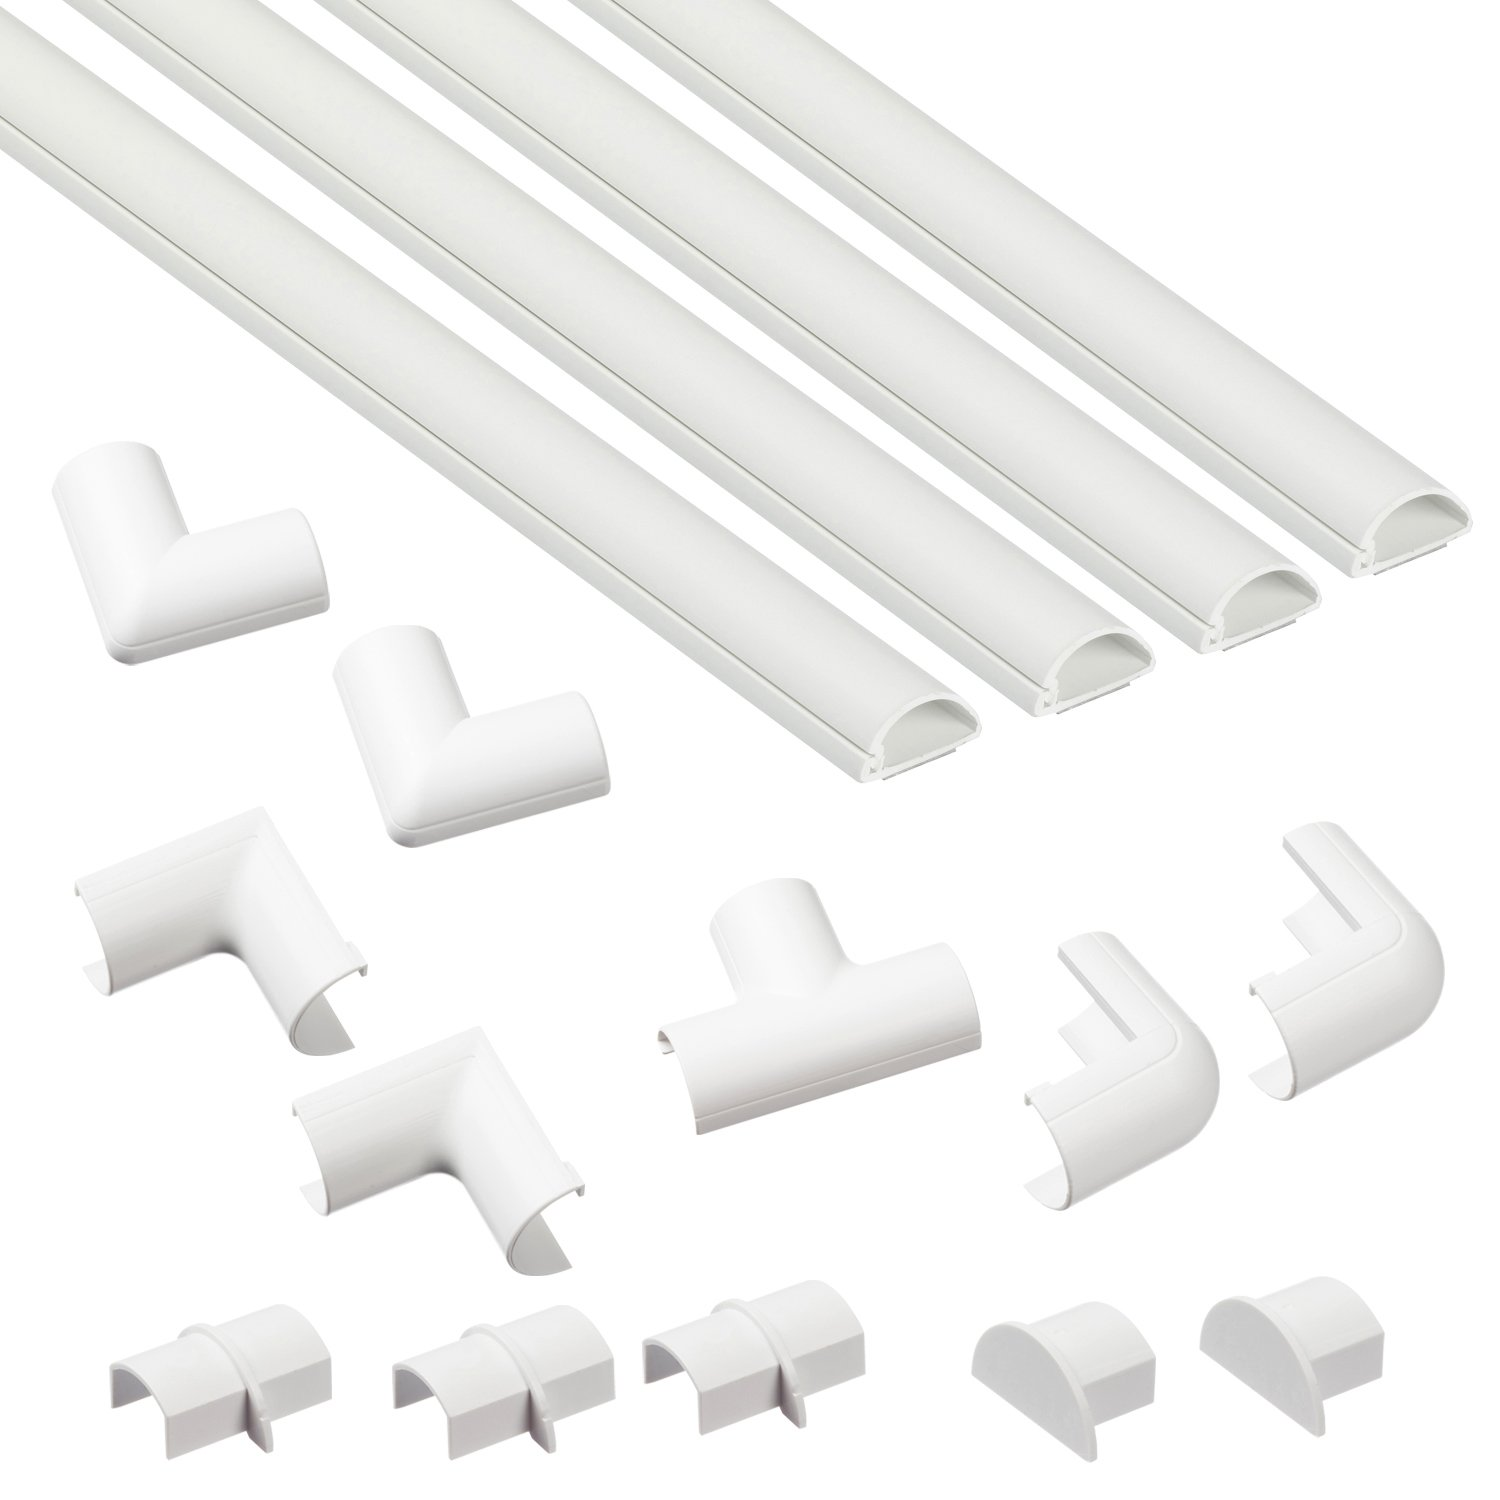 D Line Micro Cable Trunking Self Adhesive Covers Electrical Installation Wiring Pictures Electric Tidy Popular Mangement Solution 4 X 1 Meter Lengths Per Pack White